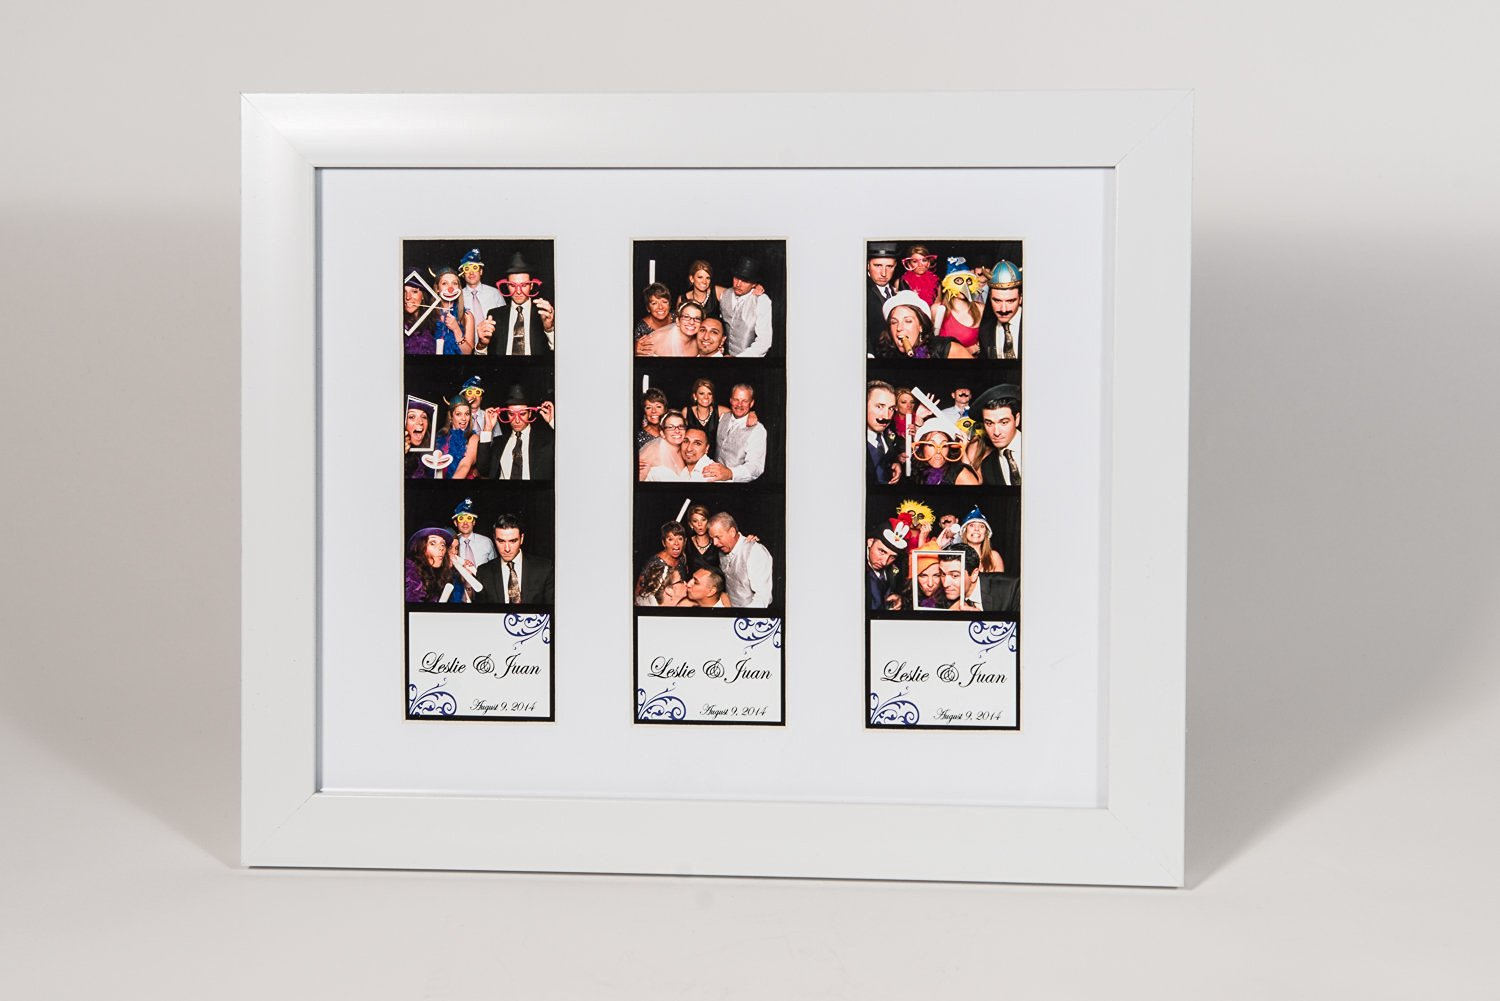 Photo Booth Frames 8 x 10 Photo Frame with mat for Three Photo Booth Pictures White 8x10 3 Pictures